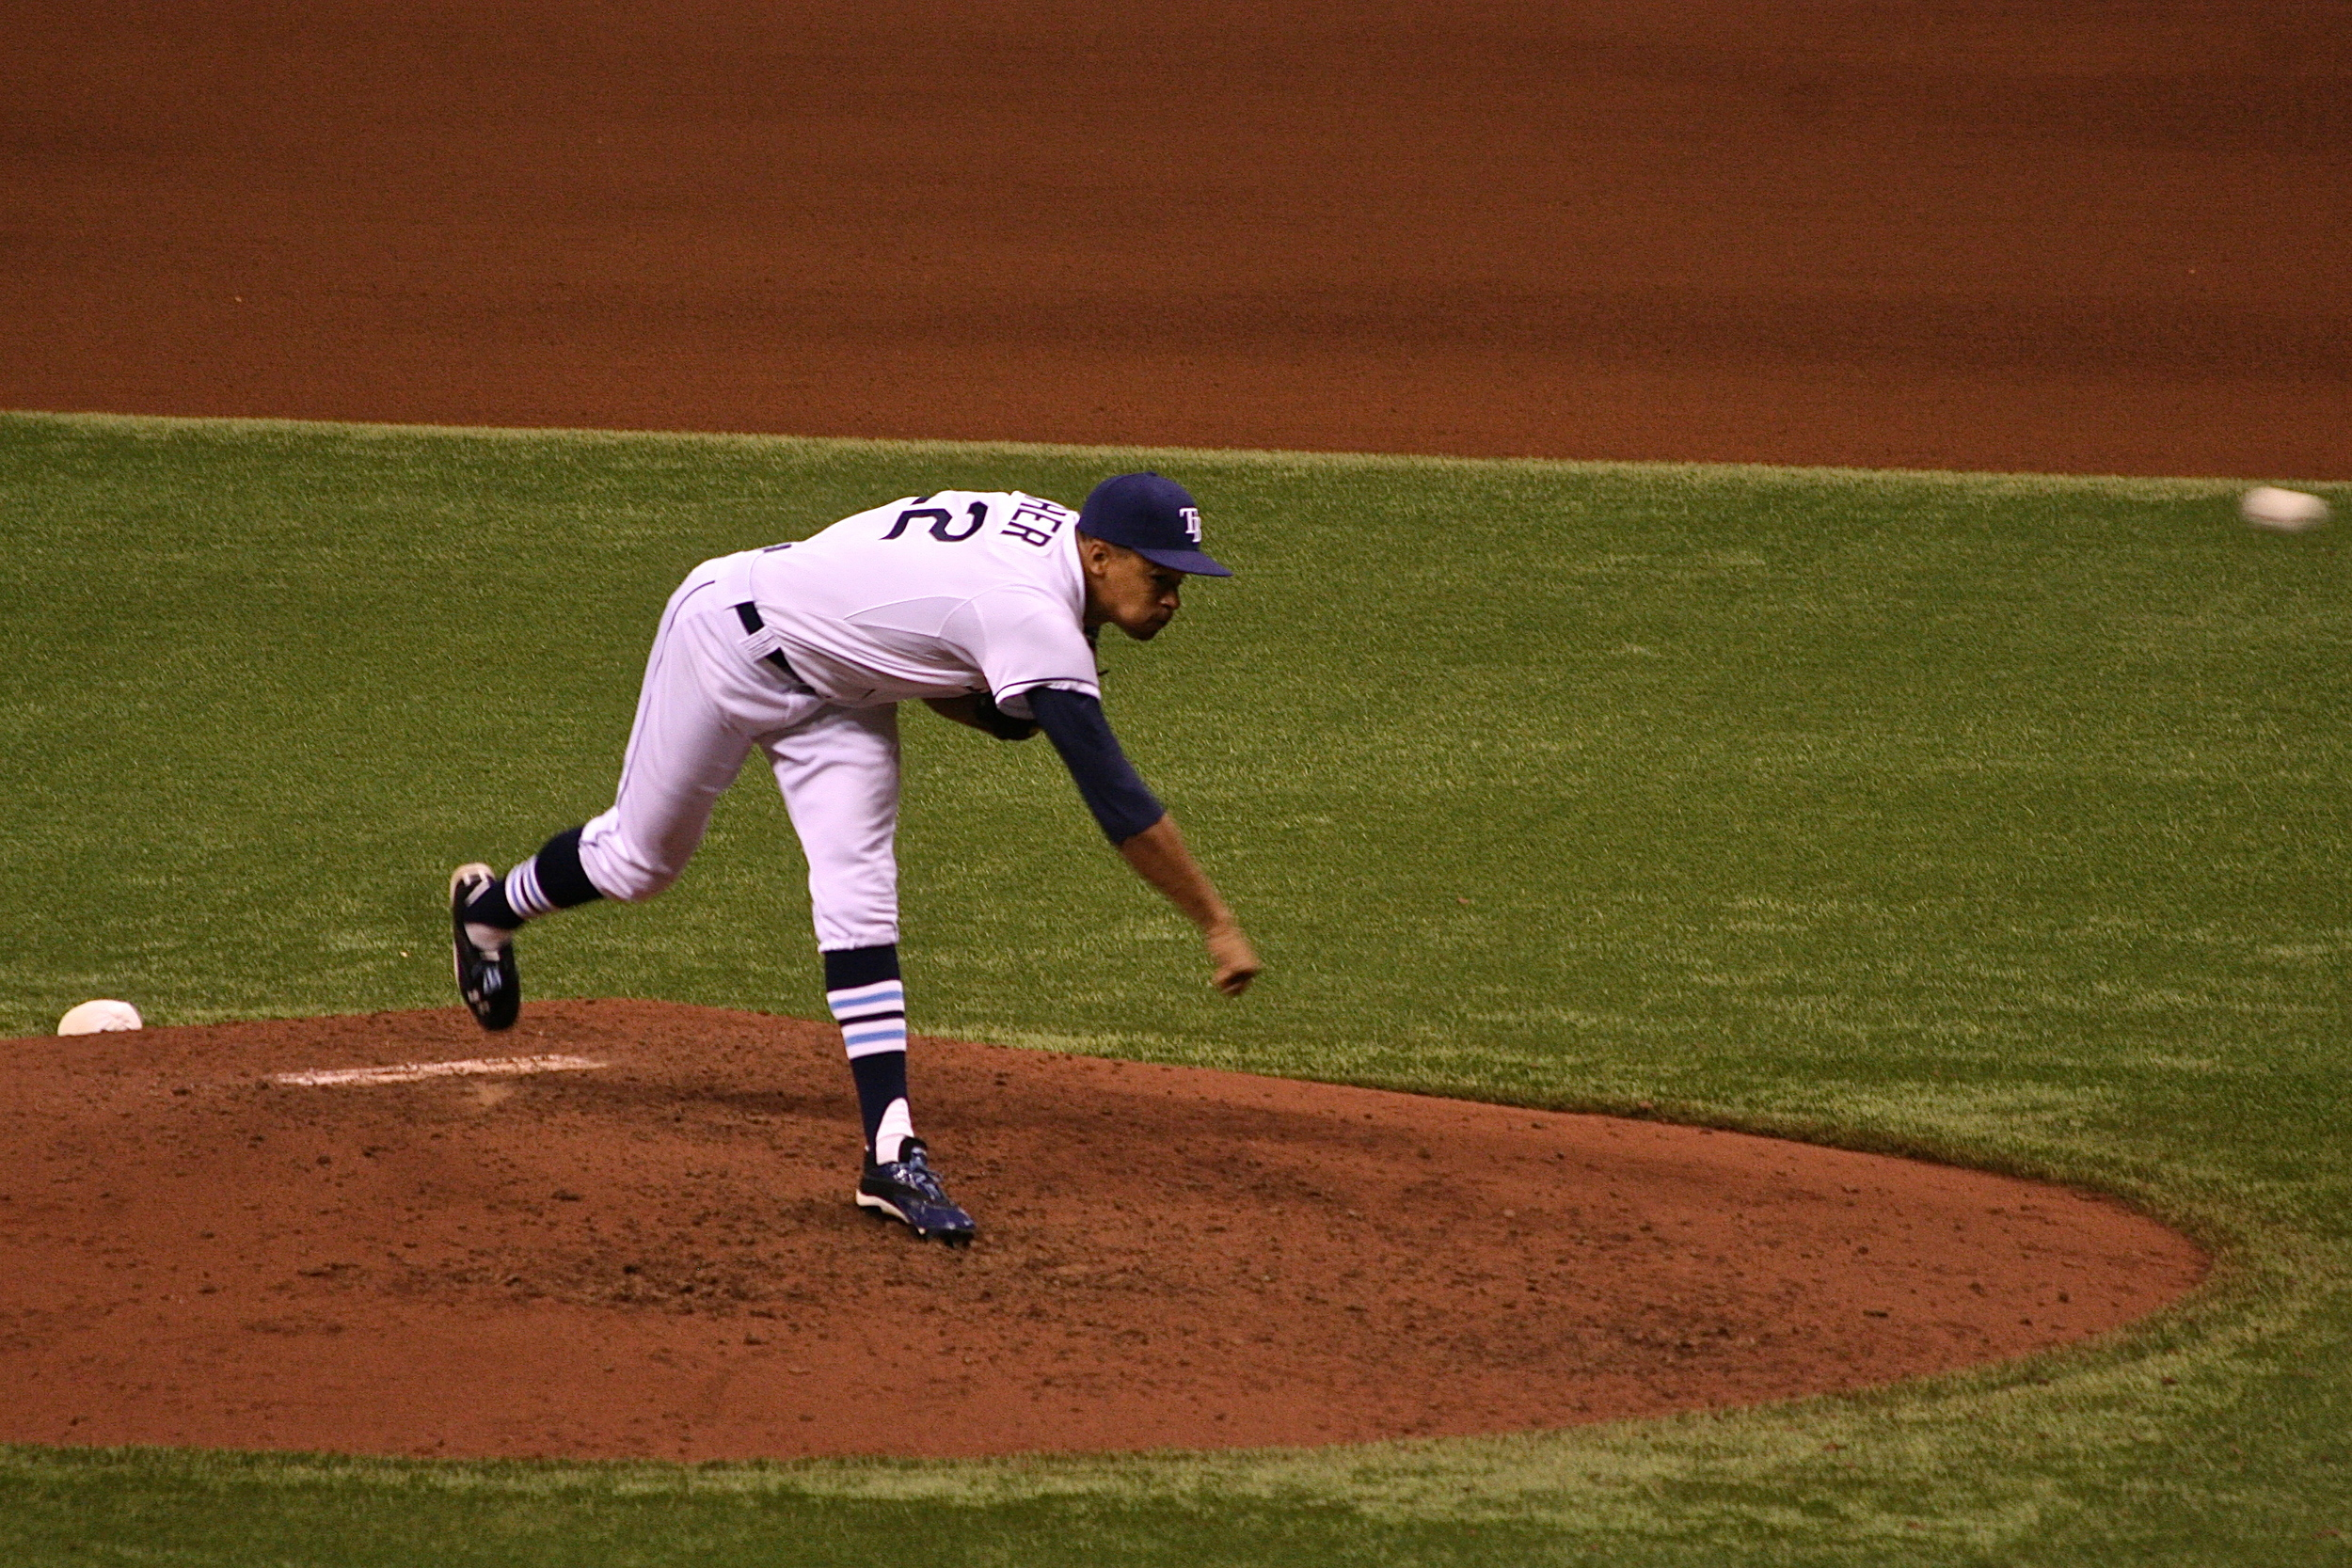 Chris Archer's first pitch at Tropicana